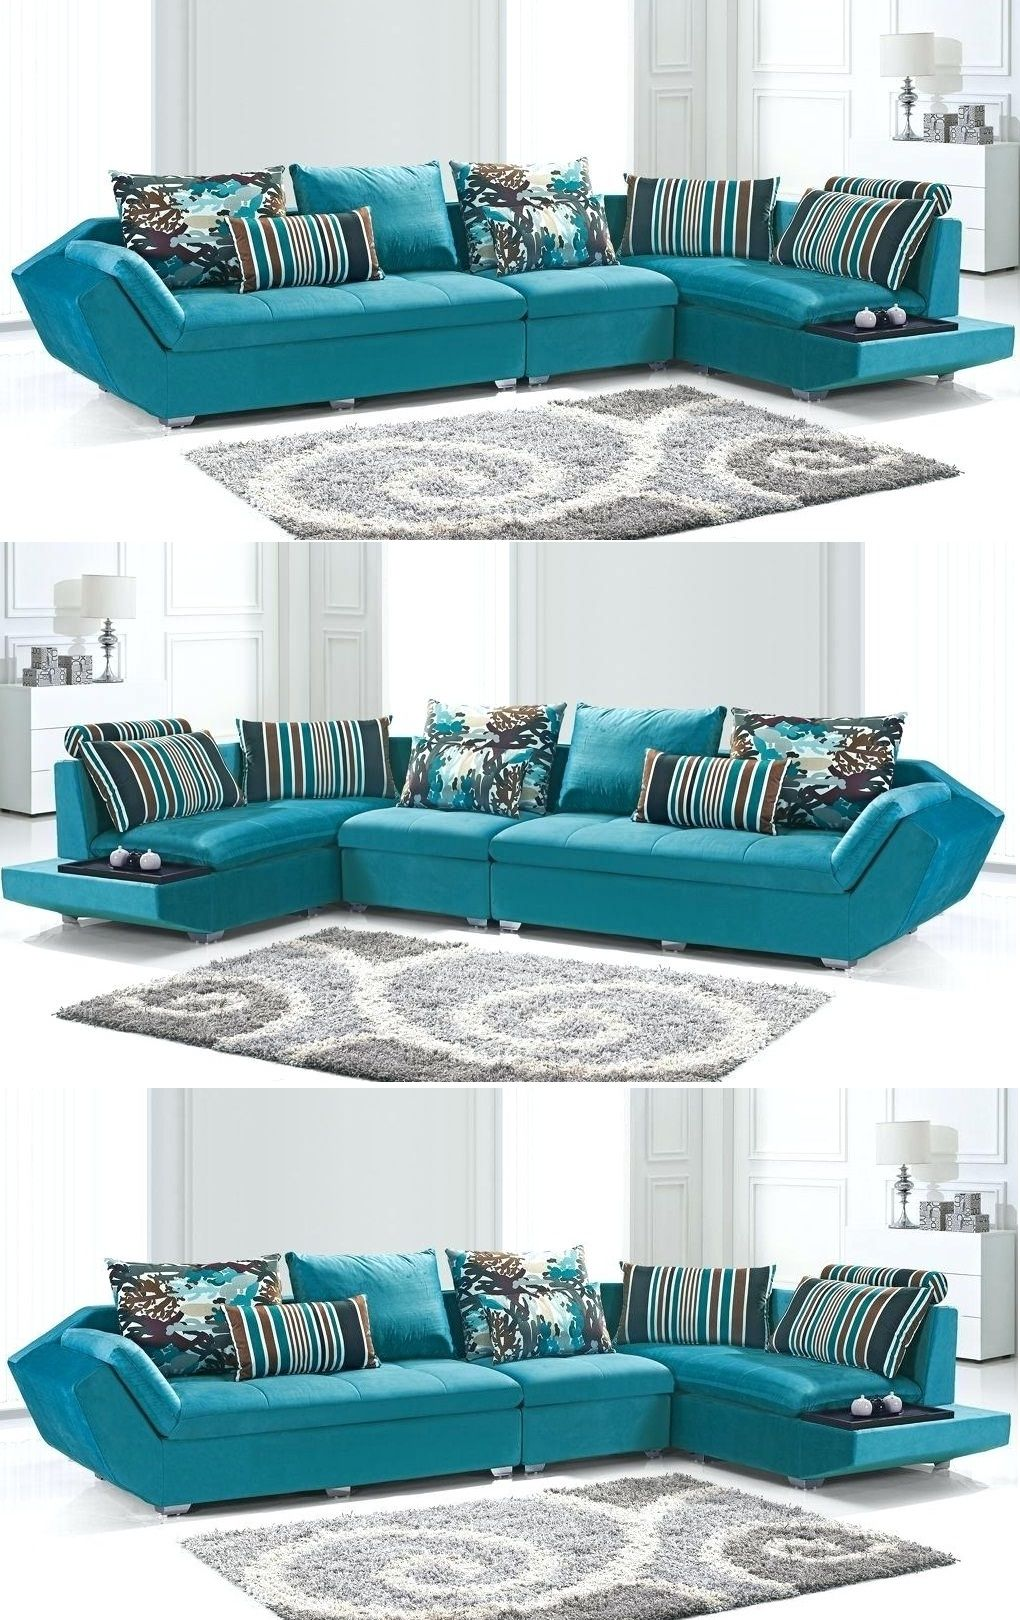 Best Fabric Sofa Design 2019 Latest Sofa Designs Fabric Sofa Design Sofa Design